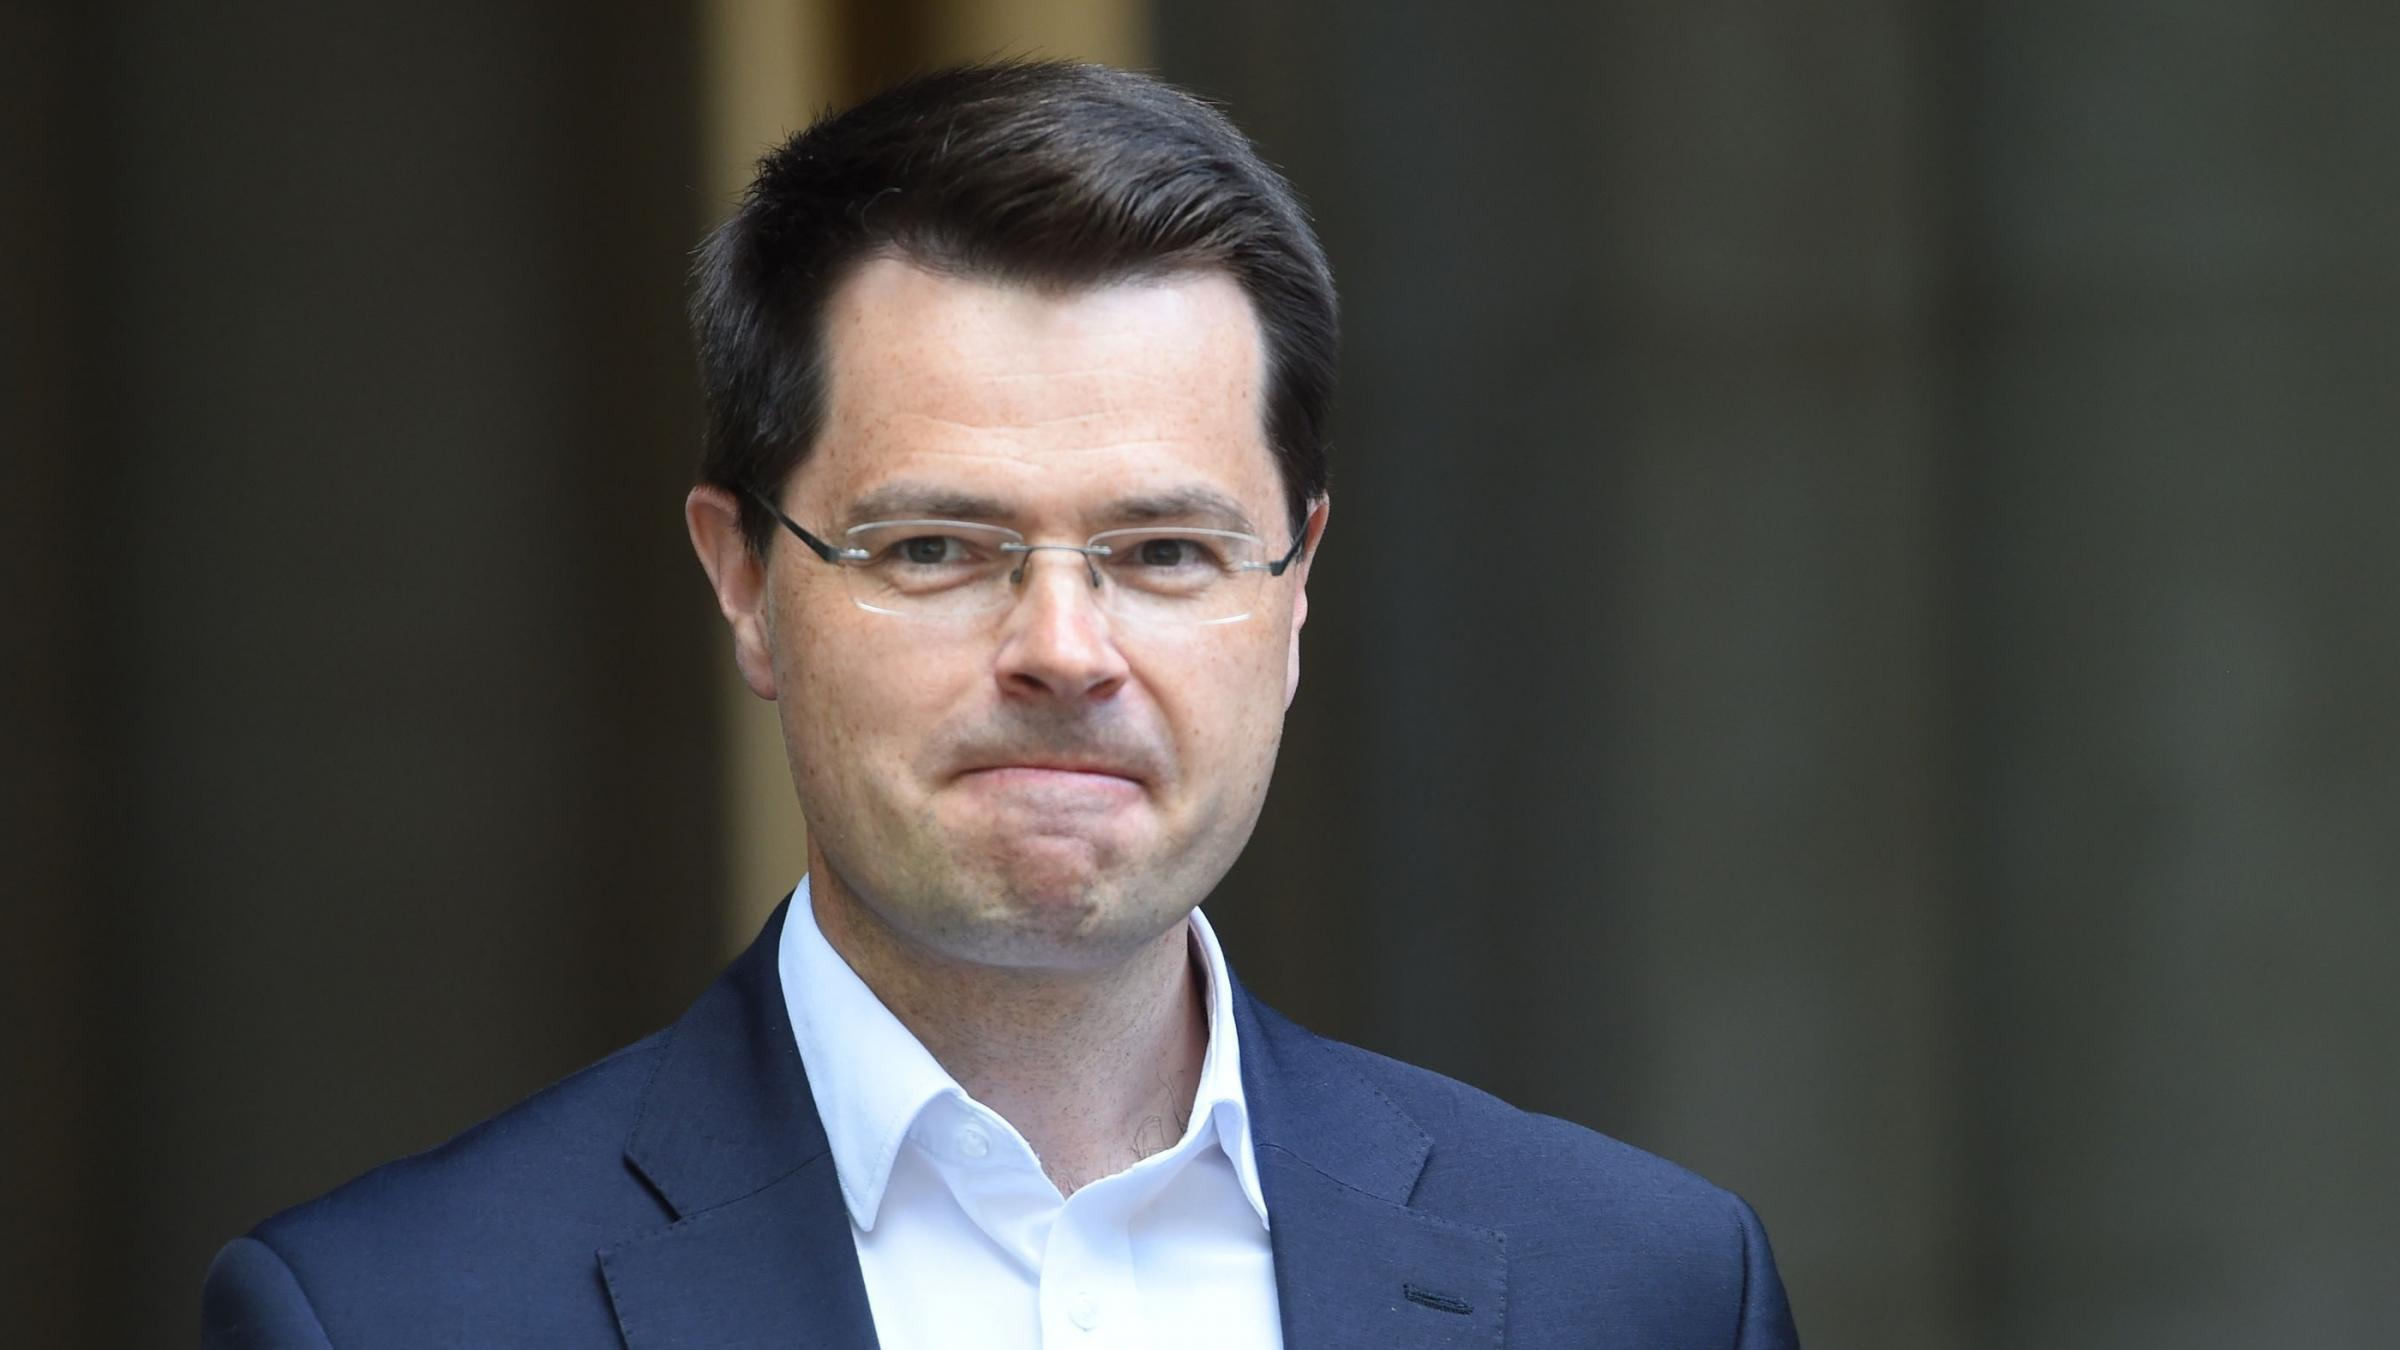 James Brokenshire not acceptable chairman for Stormont talks, says Gerry Adams